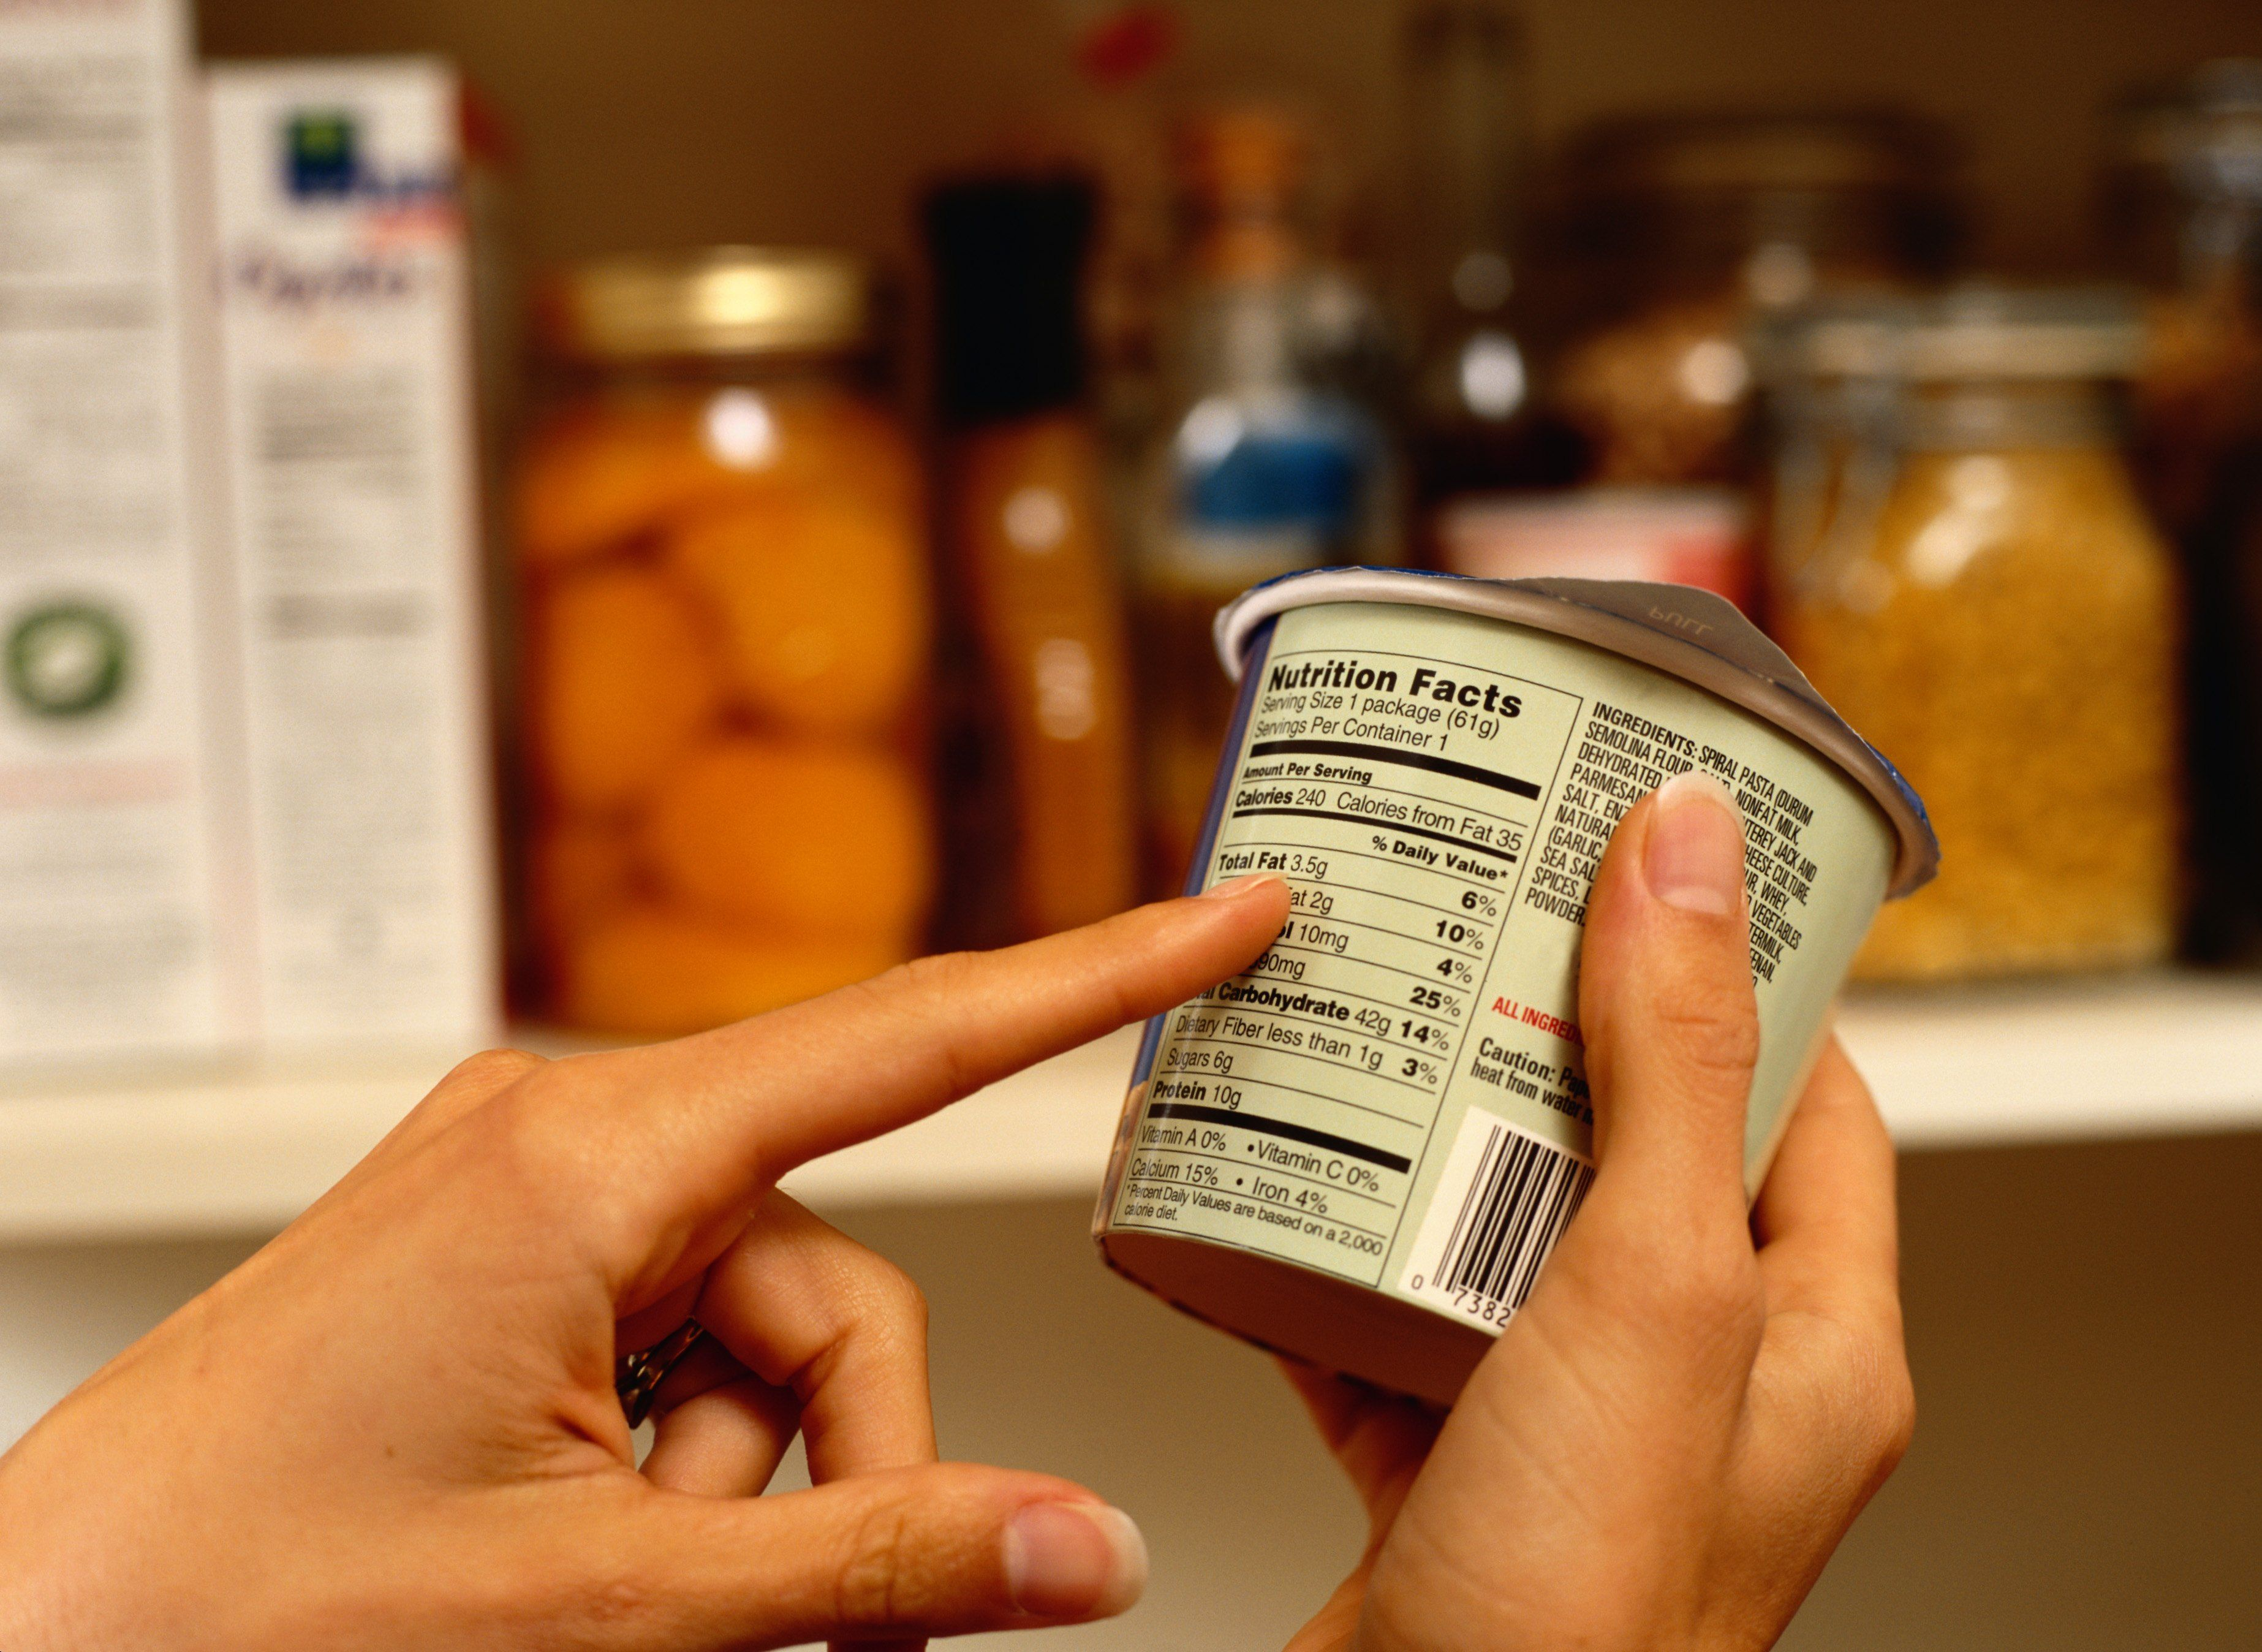 A Nutritionist Explains Exactly How to Read a Nutrition Label | Livestrong.com